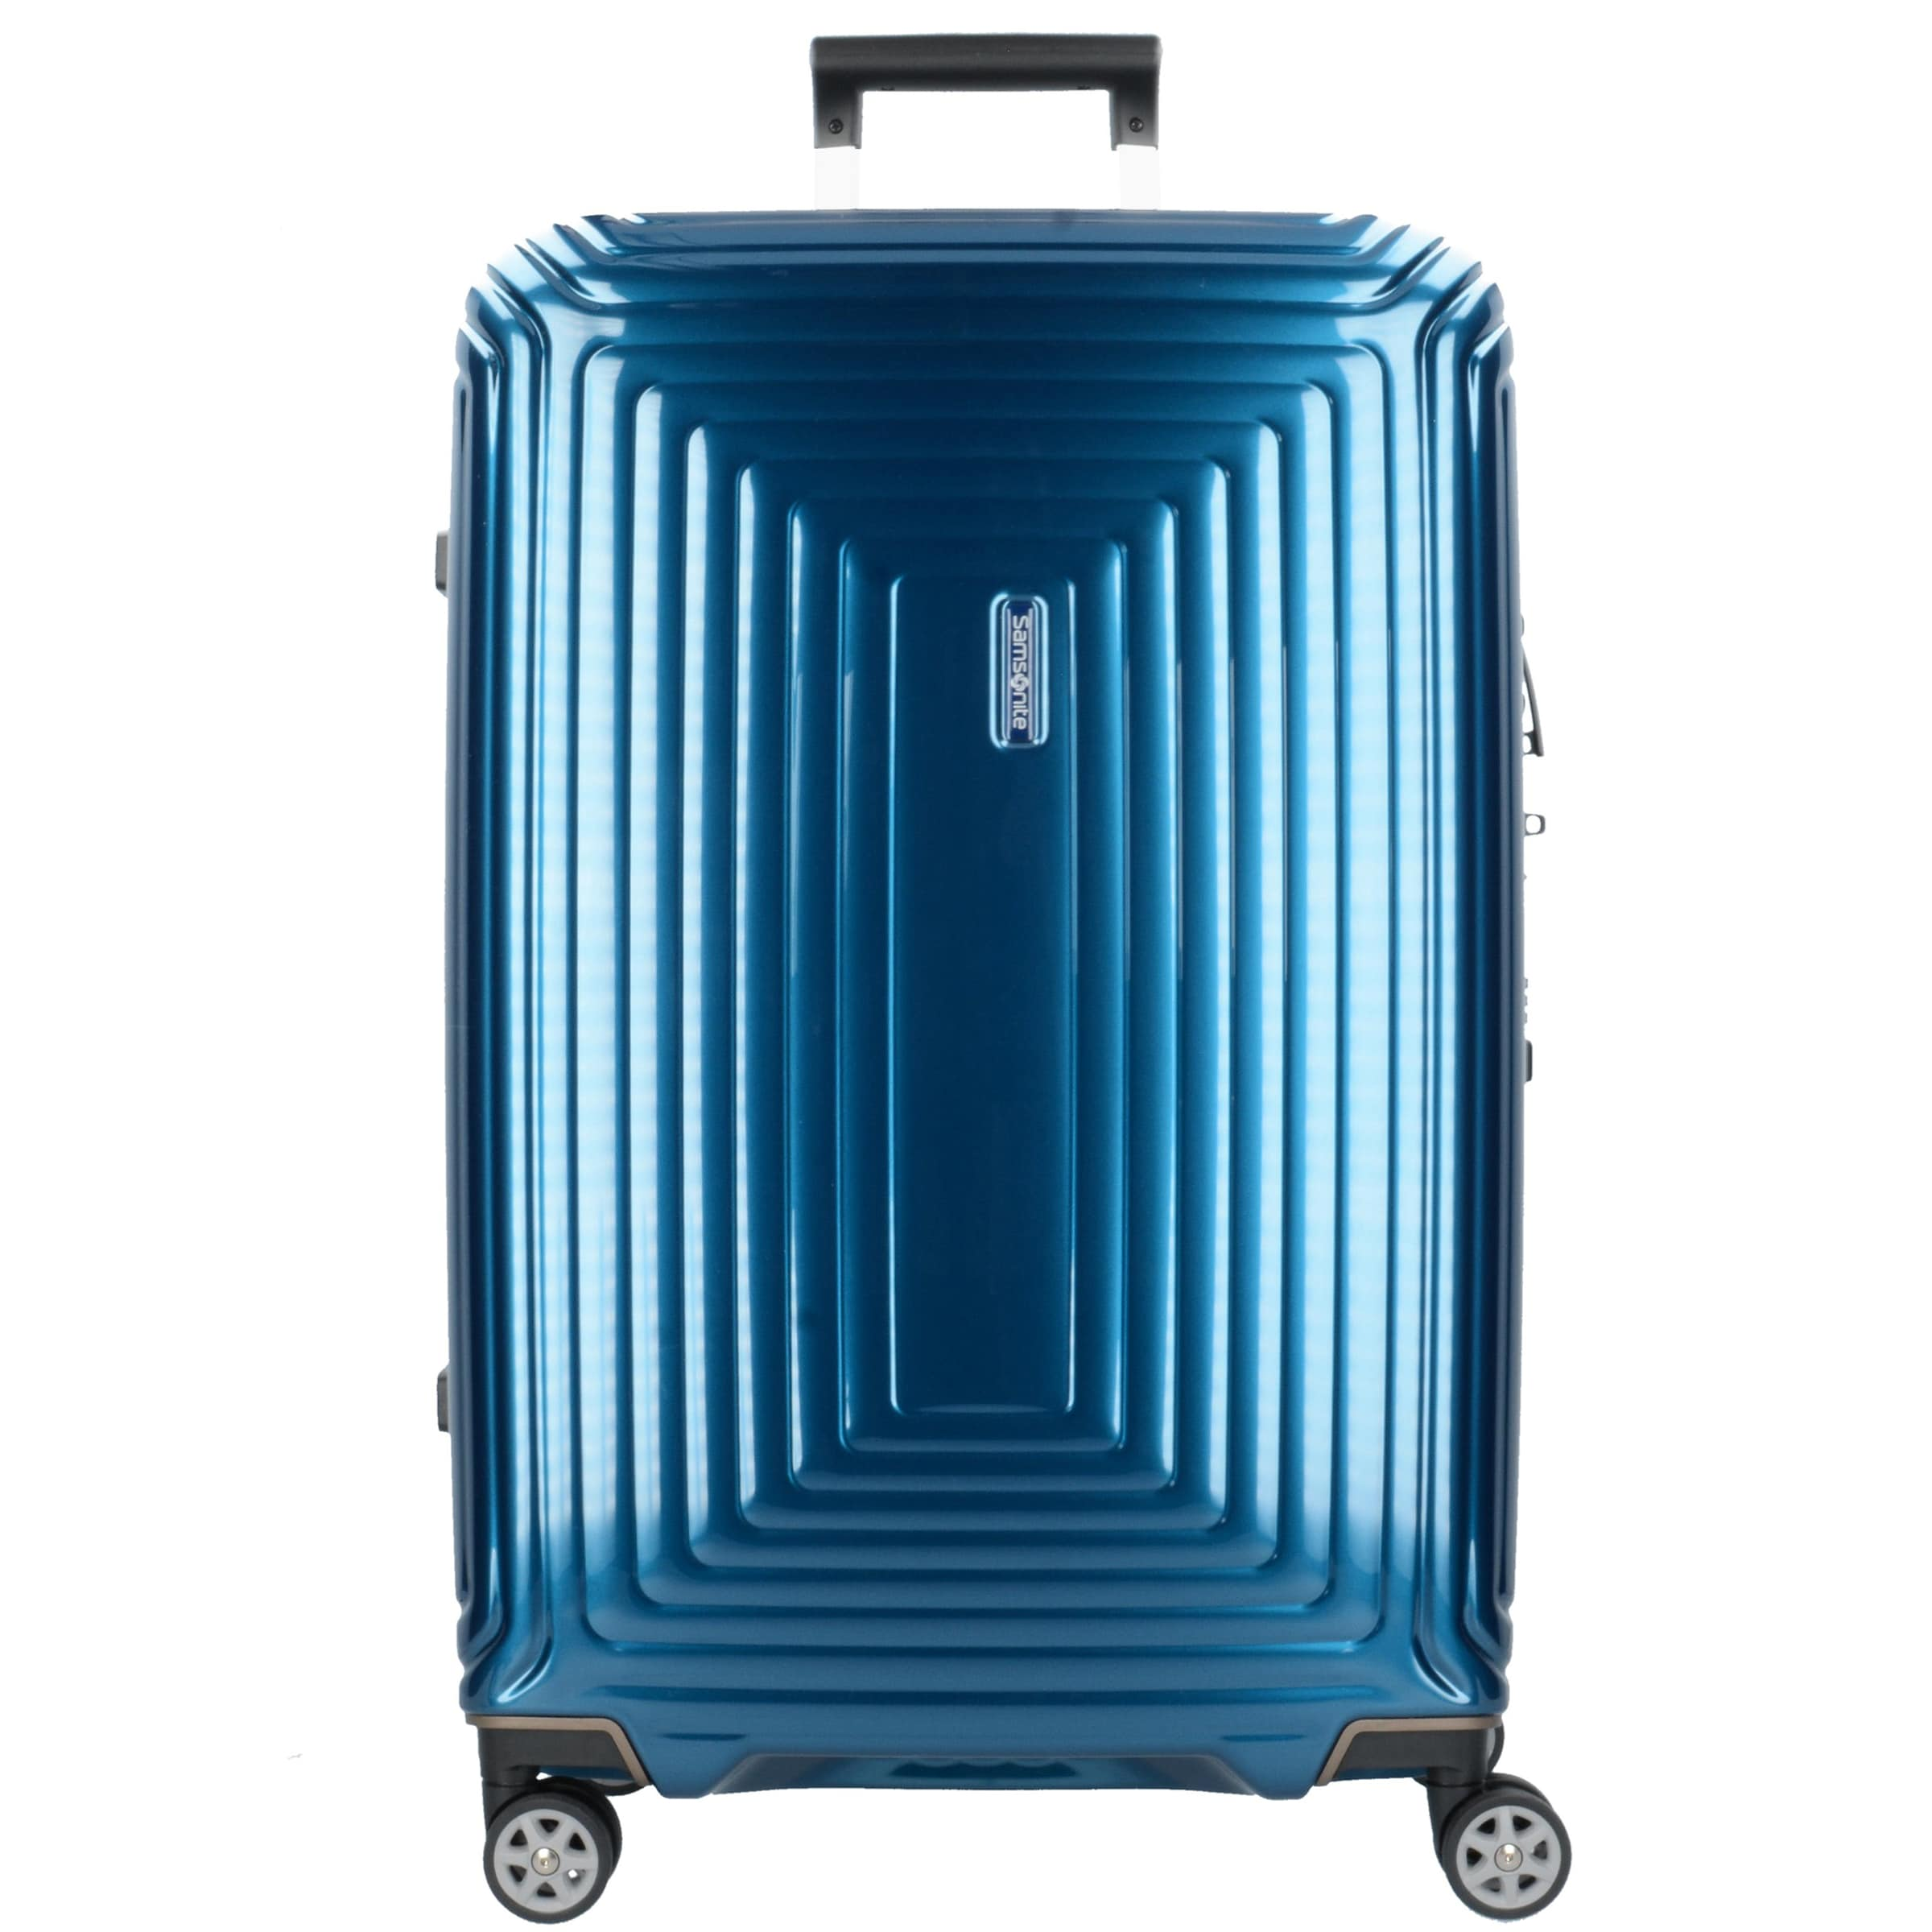 Trolley In Trolley Trolley Samsonite Blau Samsonite Blau In Samsonite hrtsQd